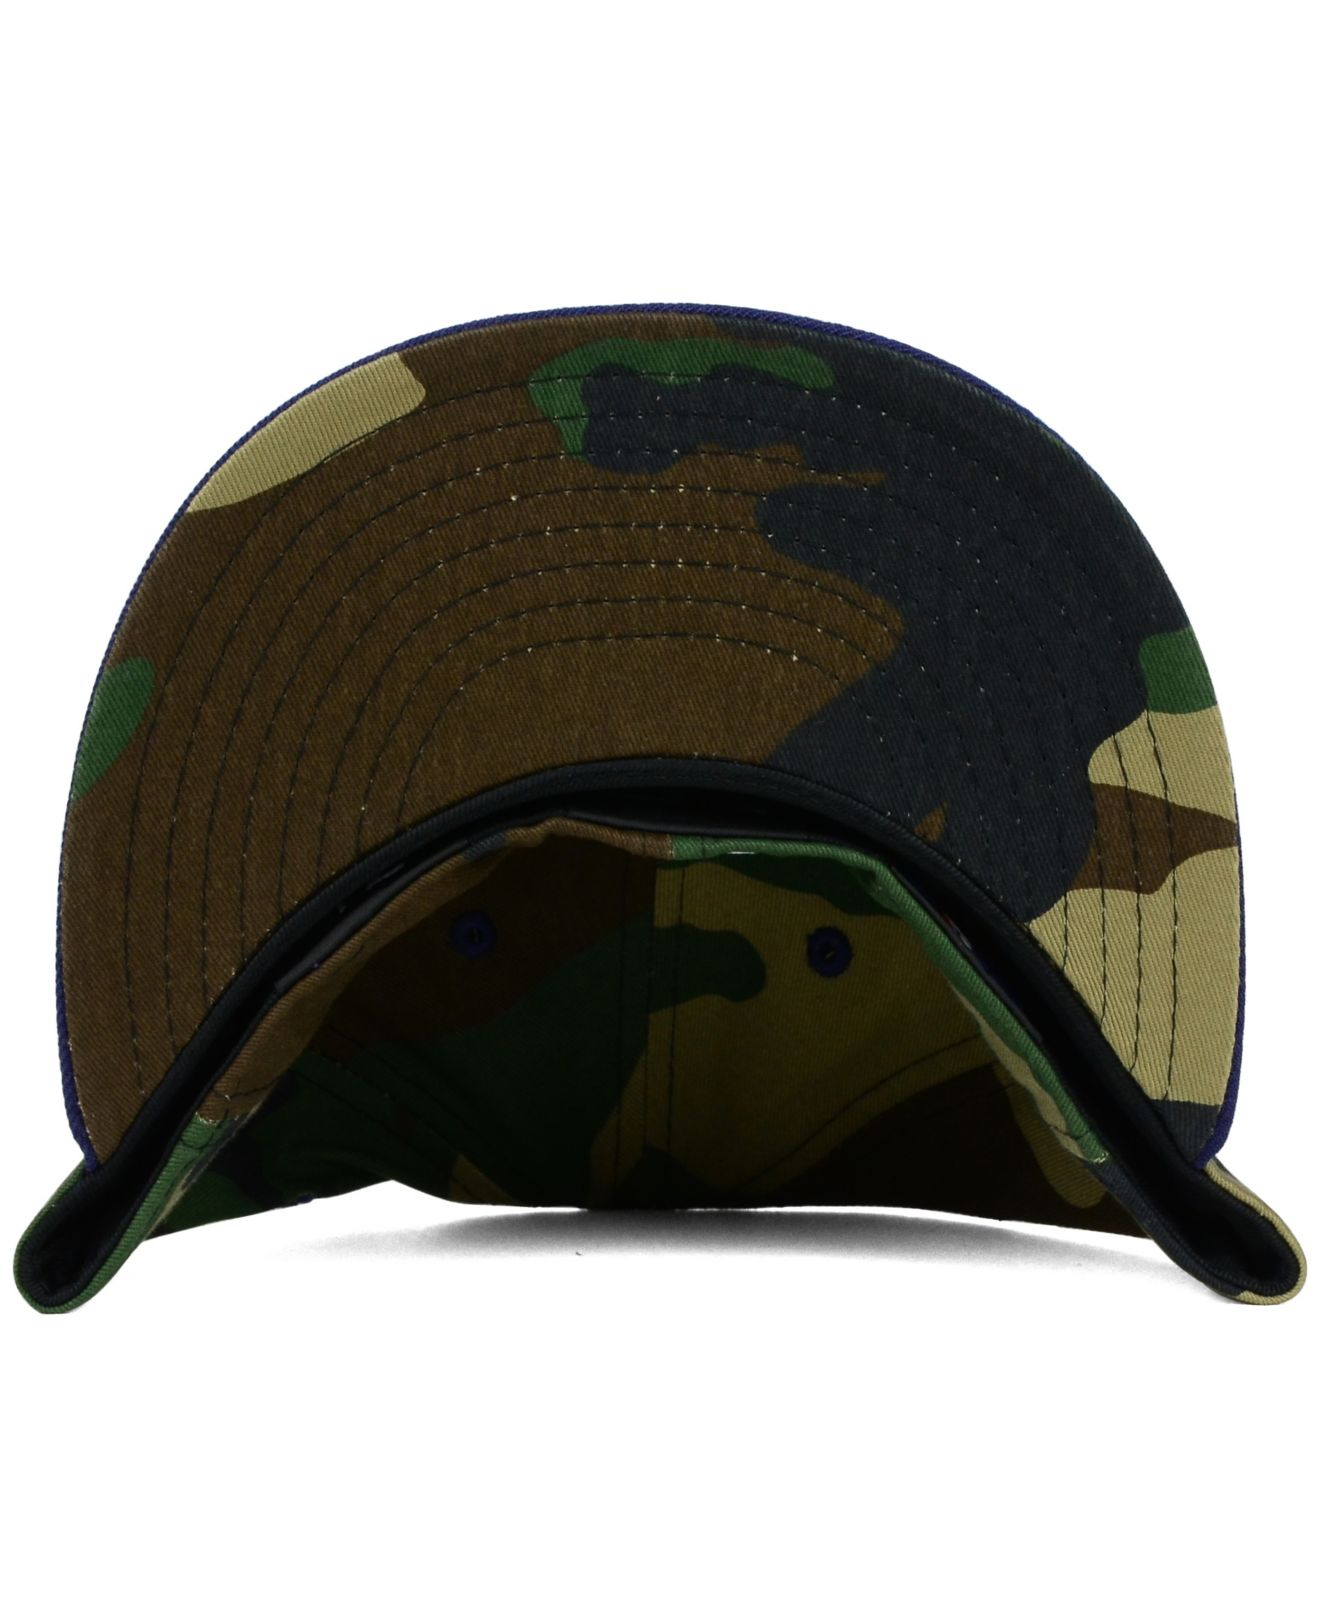 timeless design f2bea 05e74 ... purchase lyst ktz cleveland indians camo pop 59fifty cap in green for  men b3b5d caff9 ...